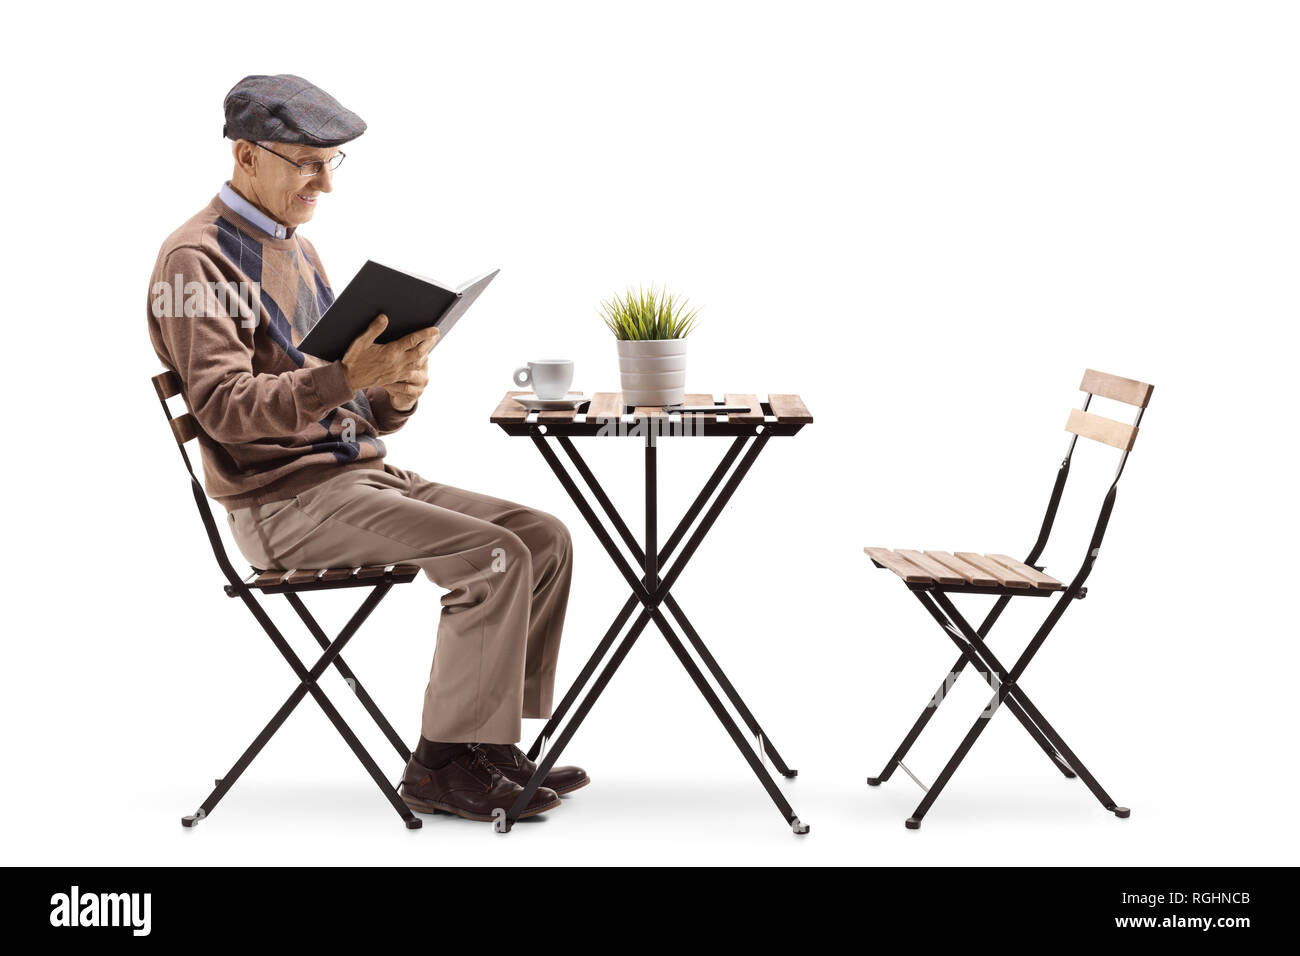 Full Length Shot Of A Senior Man Reading A Book At A Coffee Table